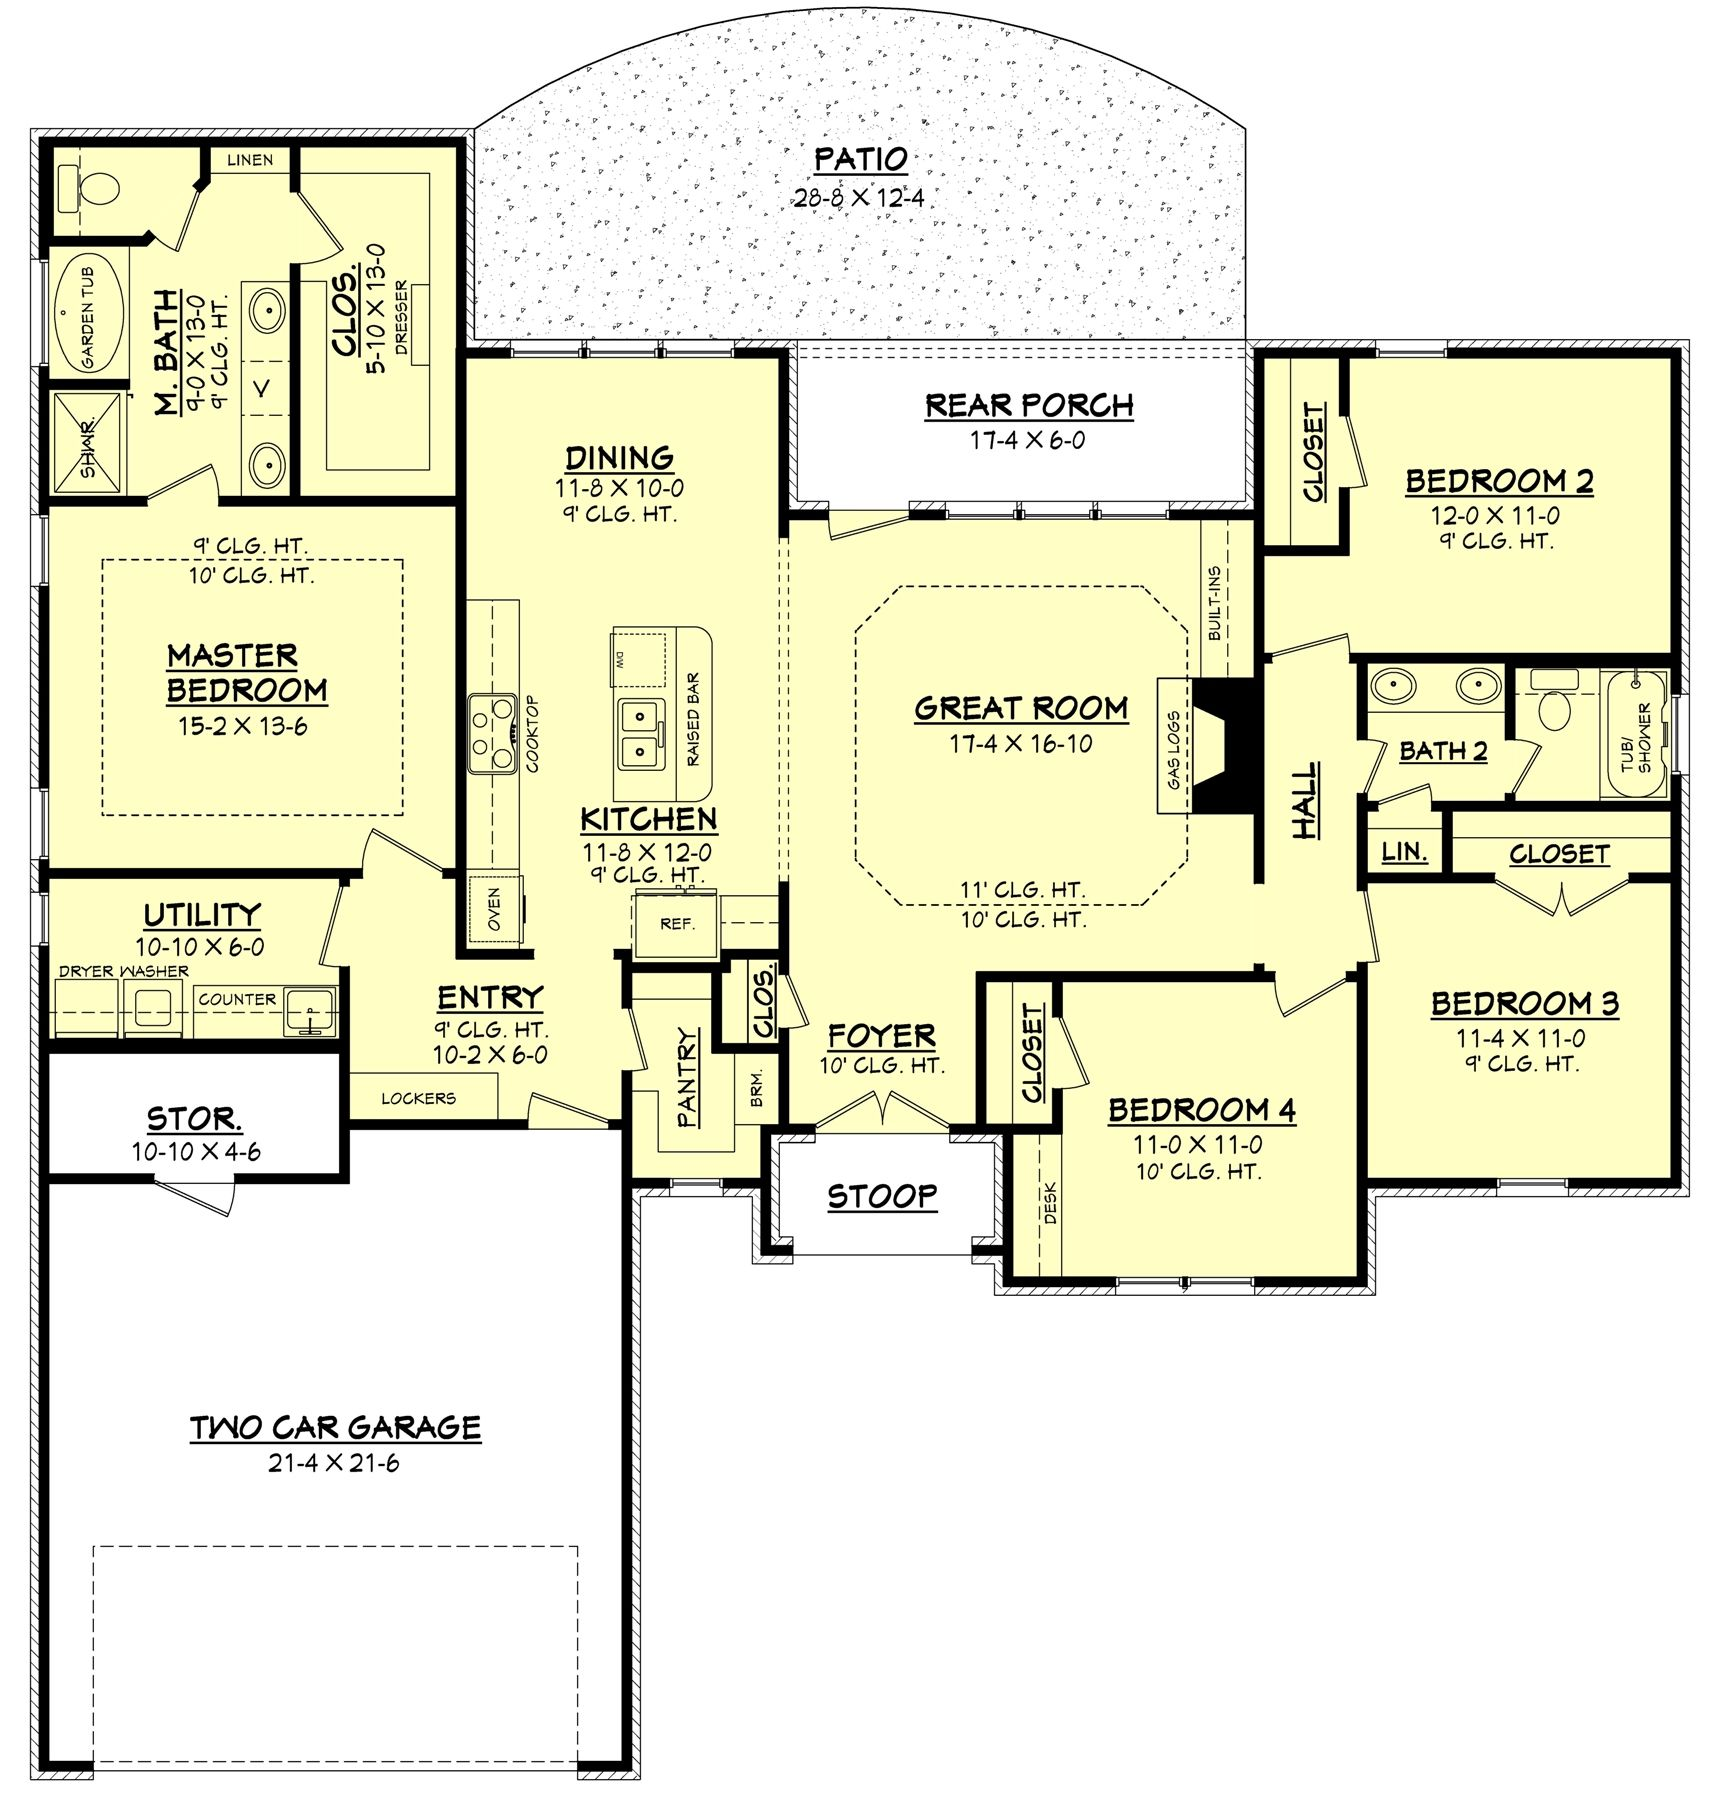 Ranch Style House Plan   4 Beds 2 Baths 1875 Sq/Ft Plan #430 87 Main Floor  Plan   Houseplans.com